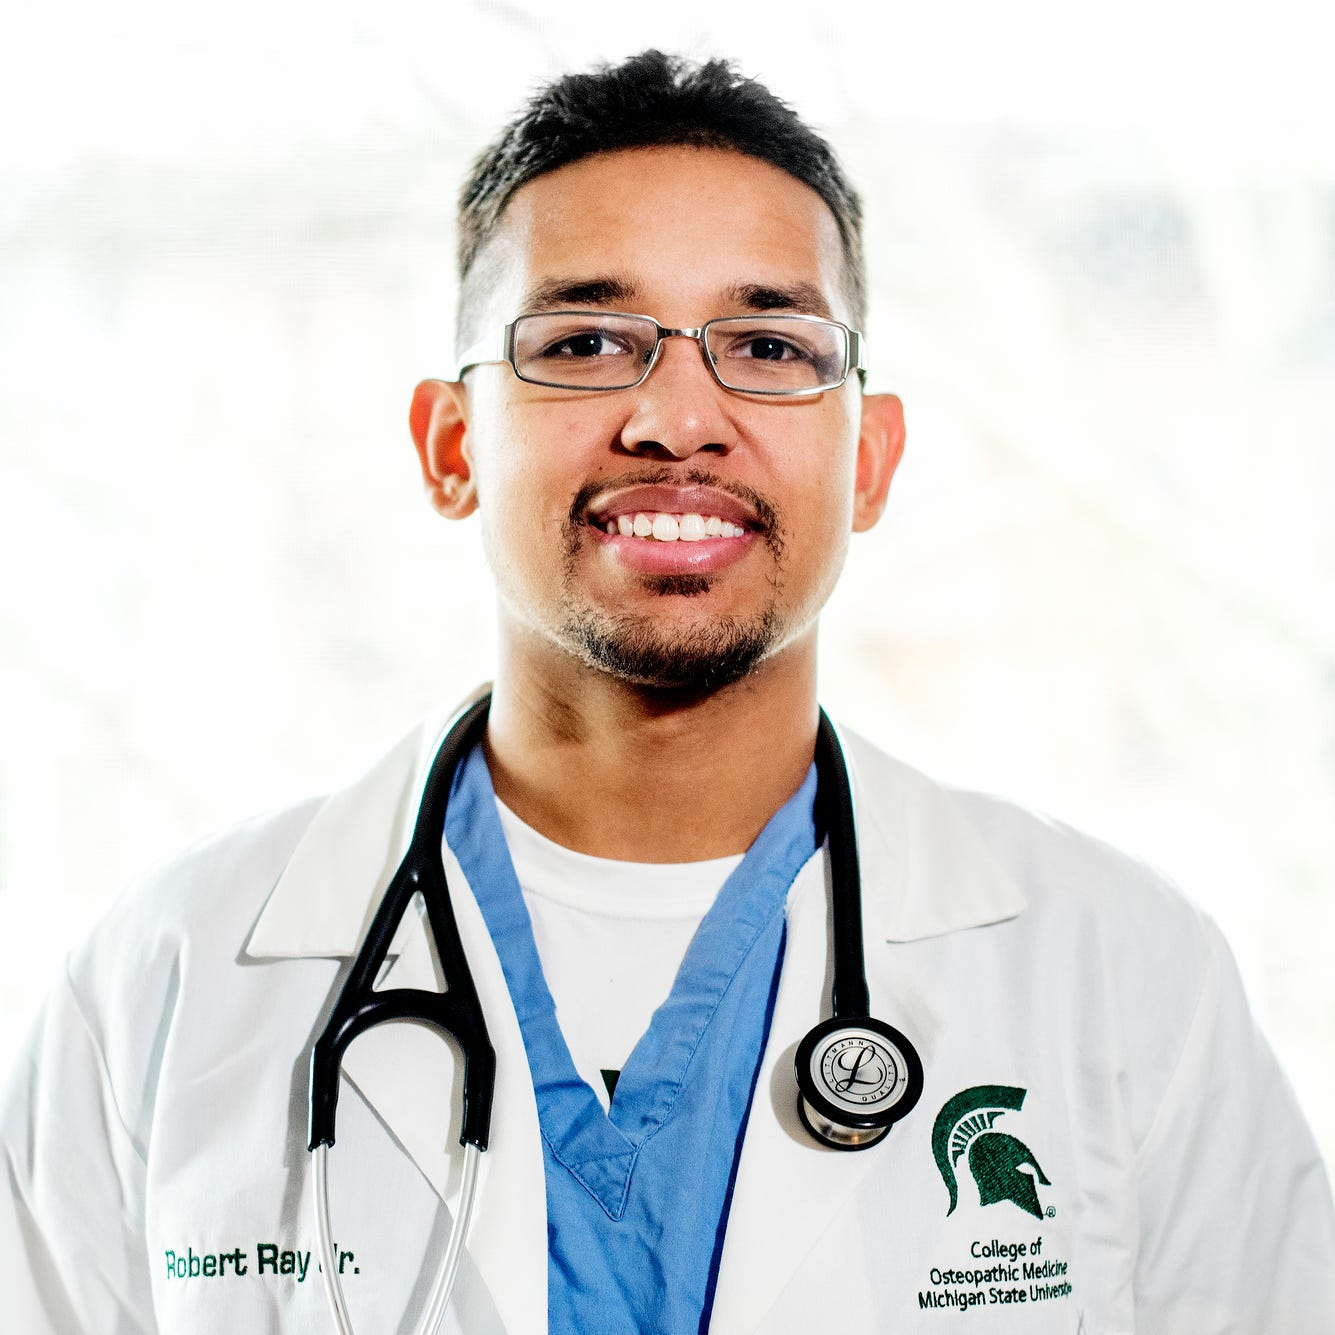 From foster care to Sexton valedictorian to MSU med school: Robert Ray Jr.'s success story